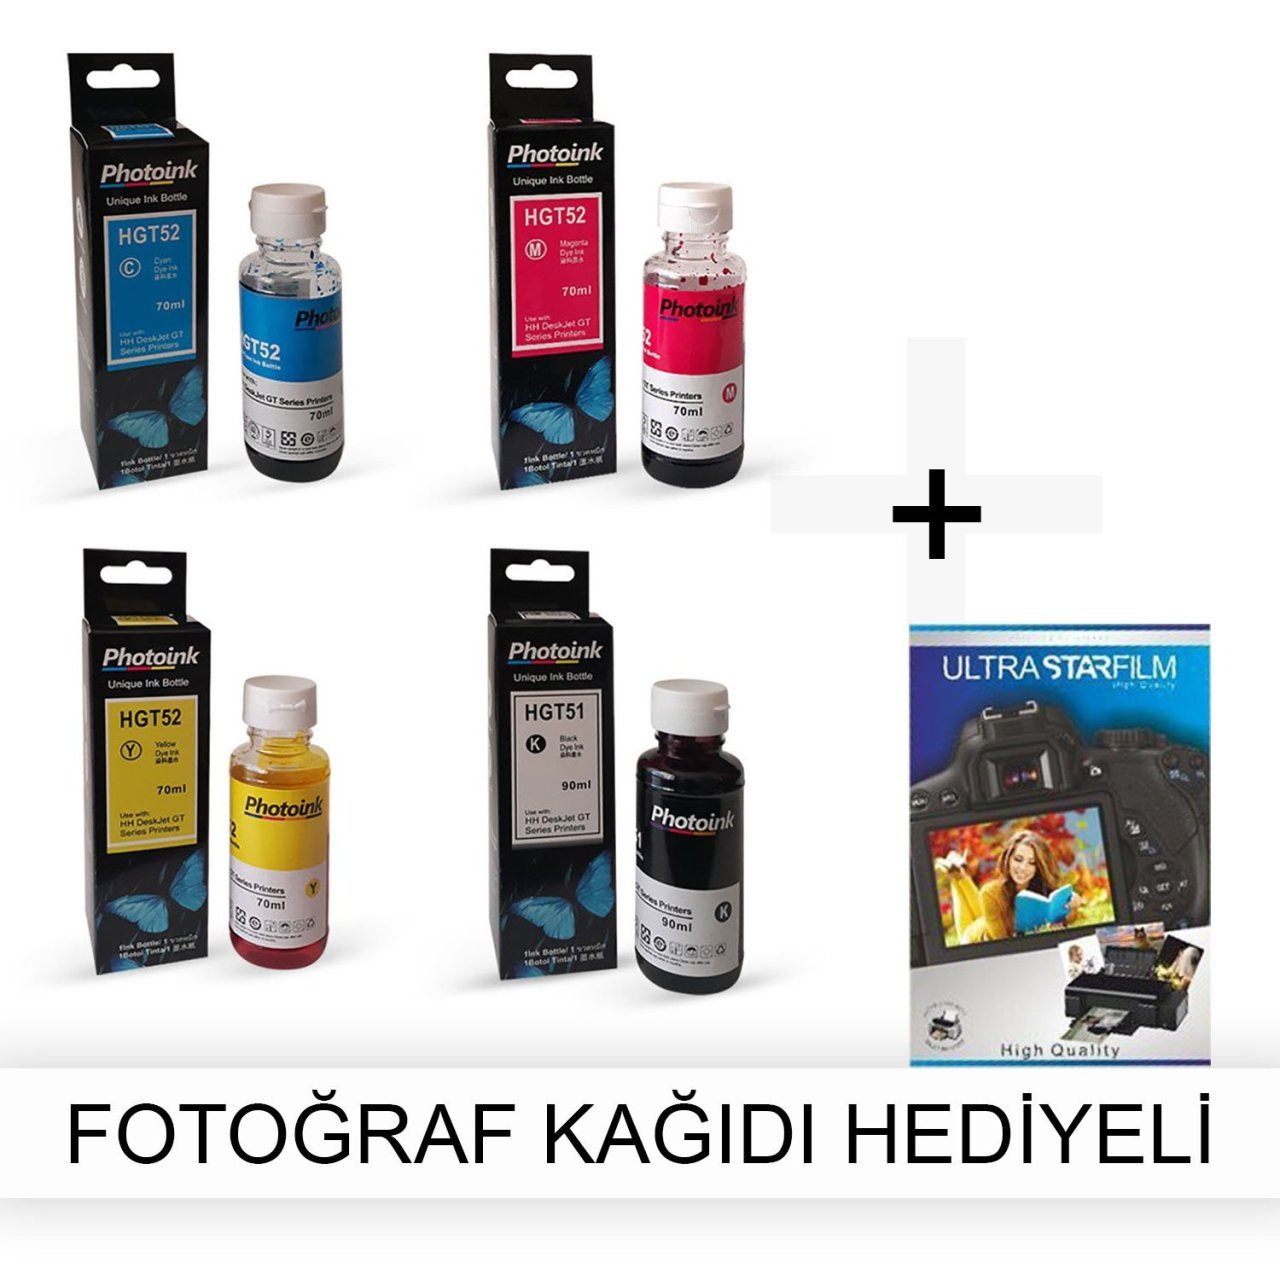 HP PSC 1610 1 Suit Photoink Ink Photo Paper Gift Photo Paper     - title=